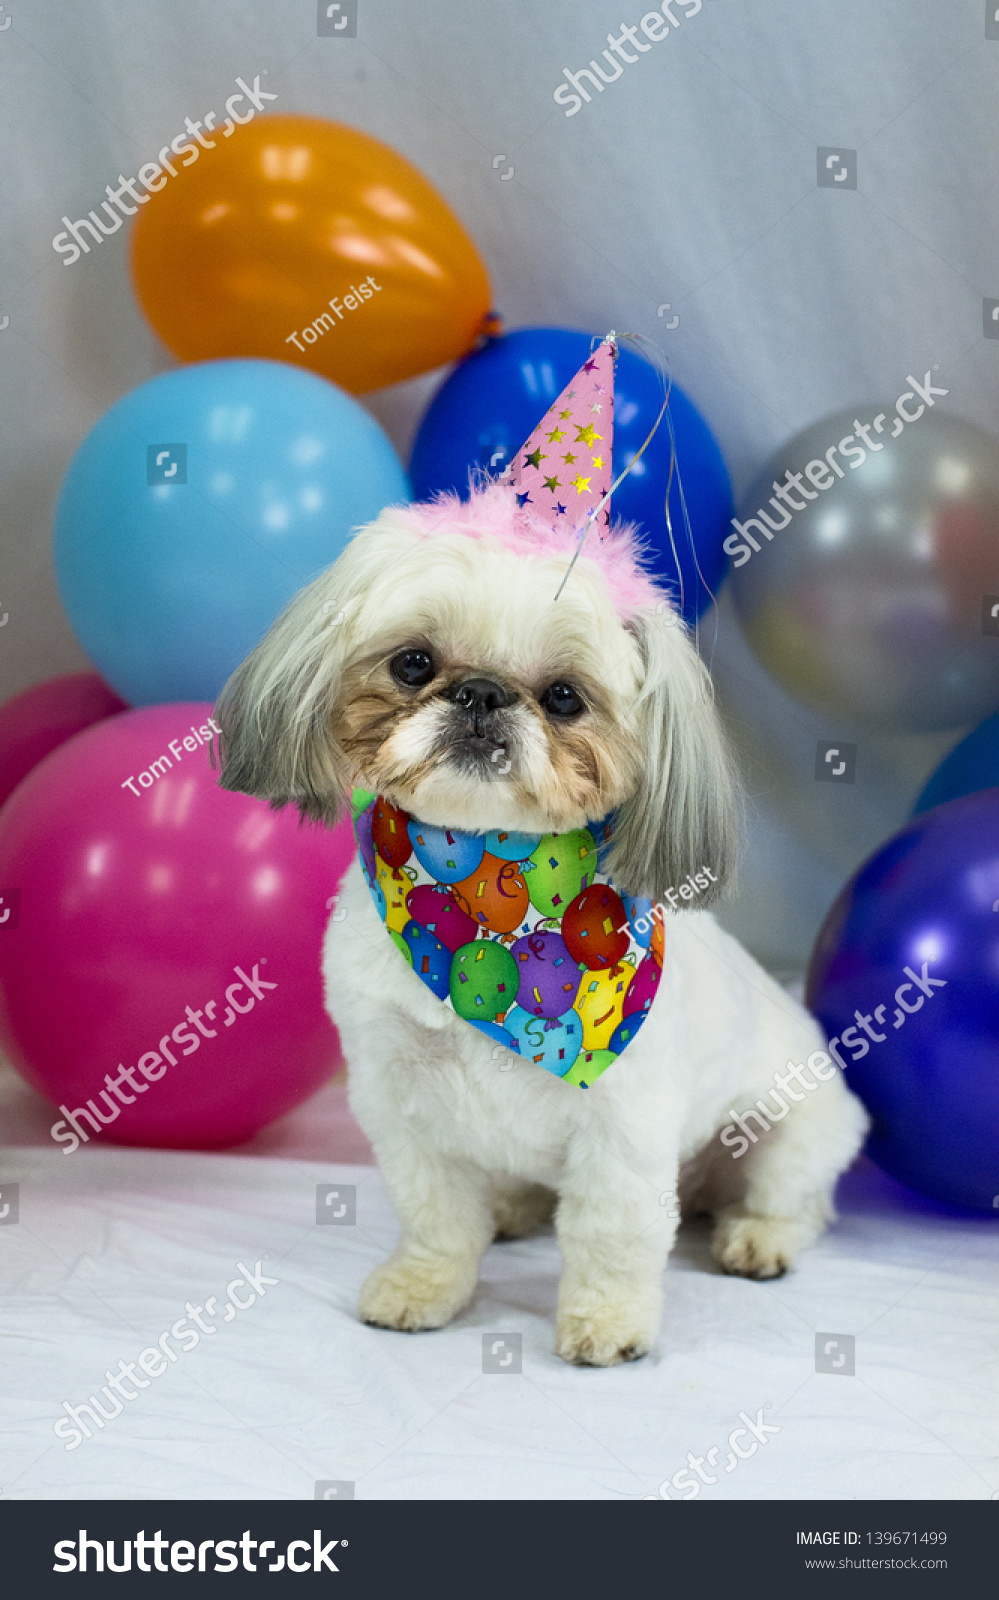 Little White Dog Wearing Birthday Hat Surrounded By Balloons Stock Photo 139671499 Shutterstock